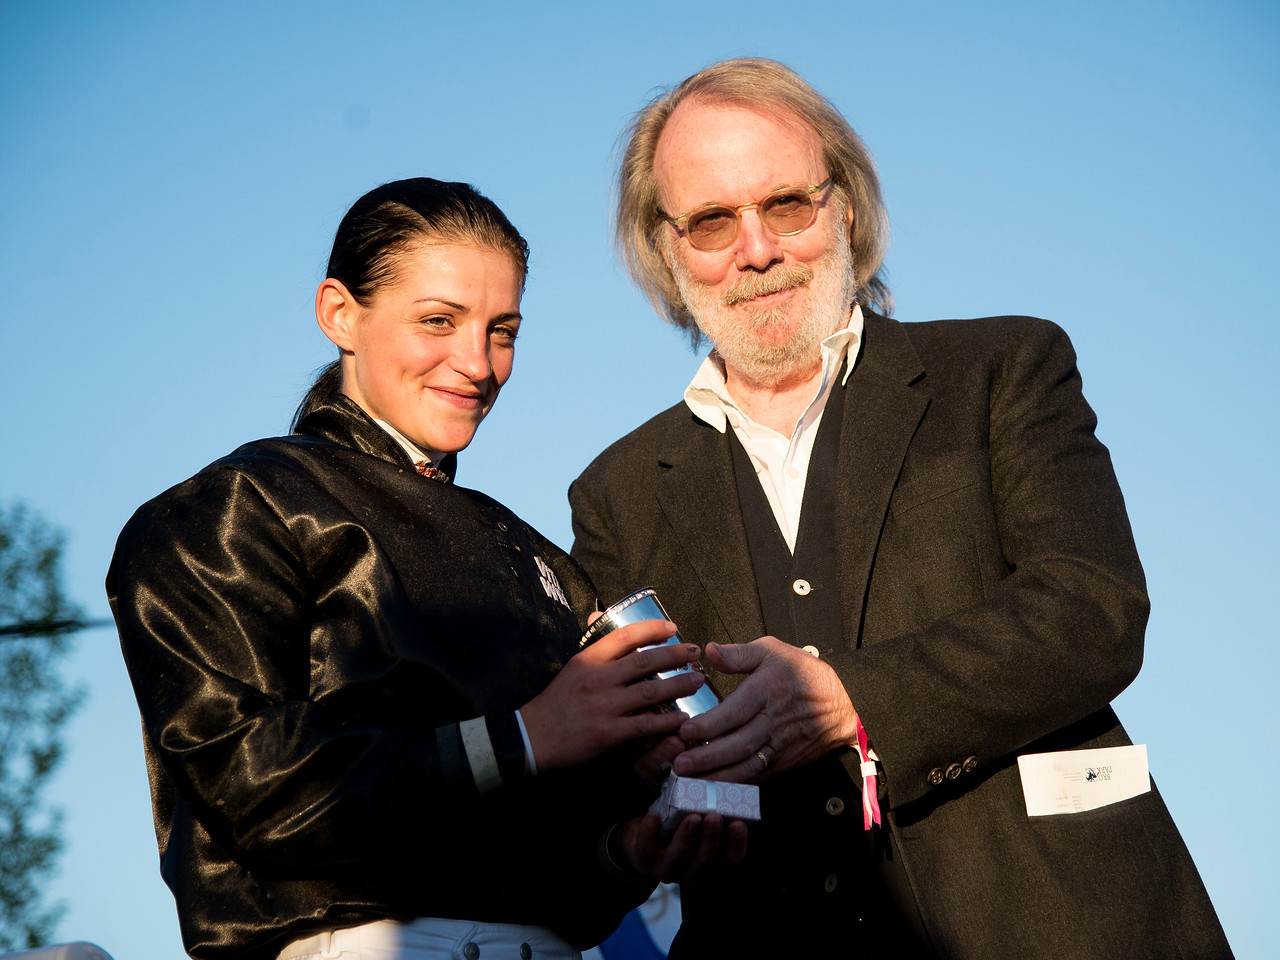 Maryline Eon, the winner of the Lady Jockeys' Thoroughbred World Championship, receives the trophy from the event sponsor Benny Andersson.